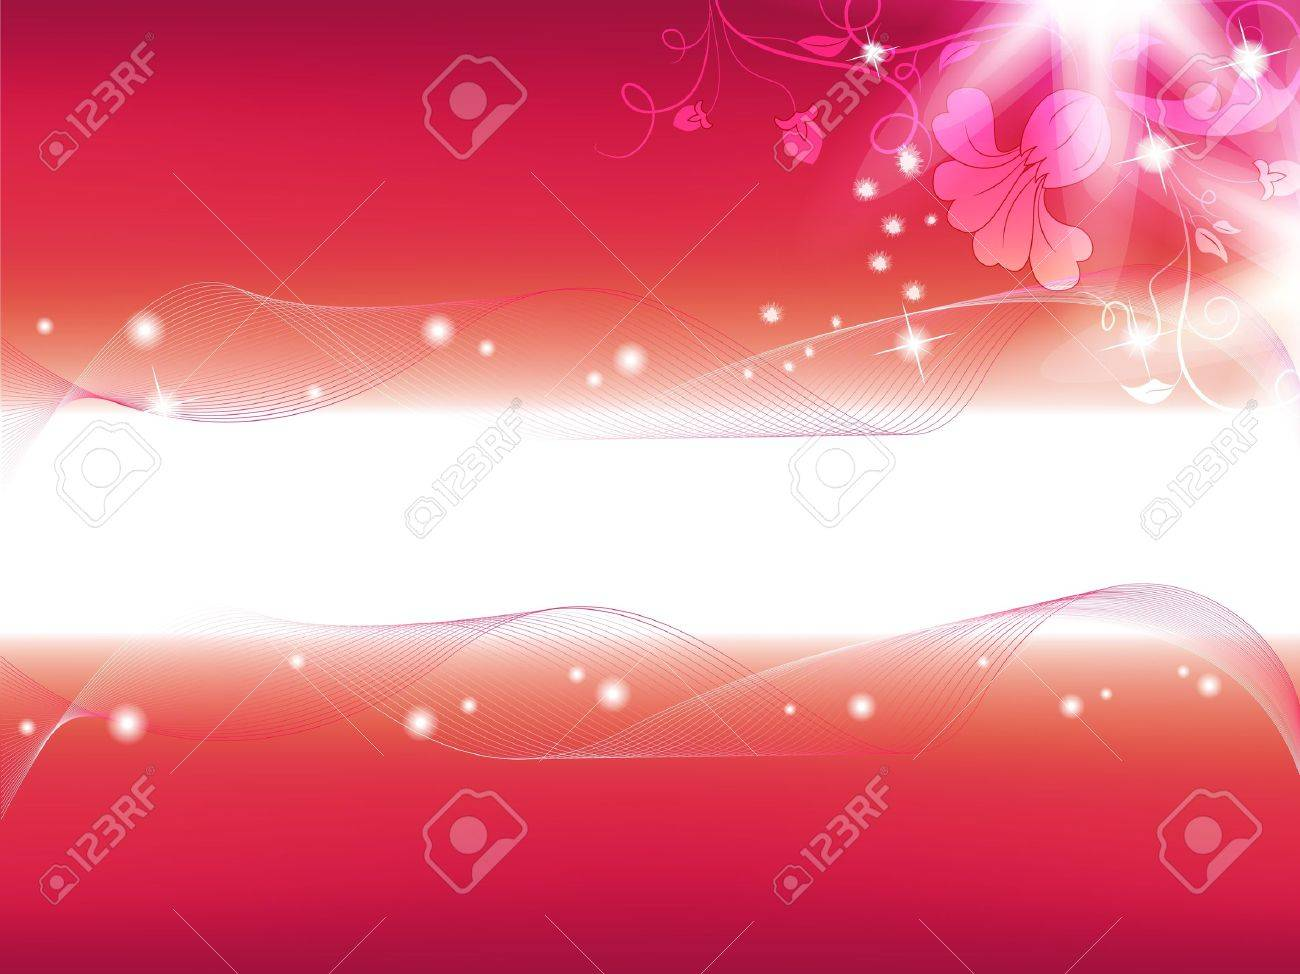 Beautiful flower background. Flowers and stars on a bright background. Place Your text if necessary Stock Vector - 9391655